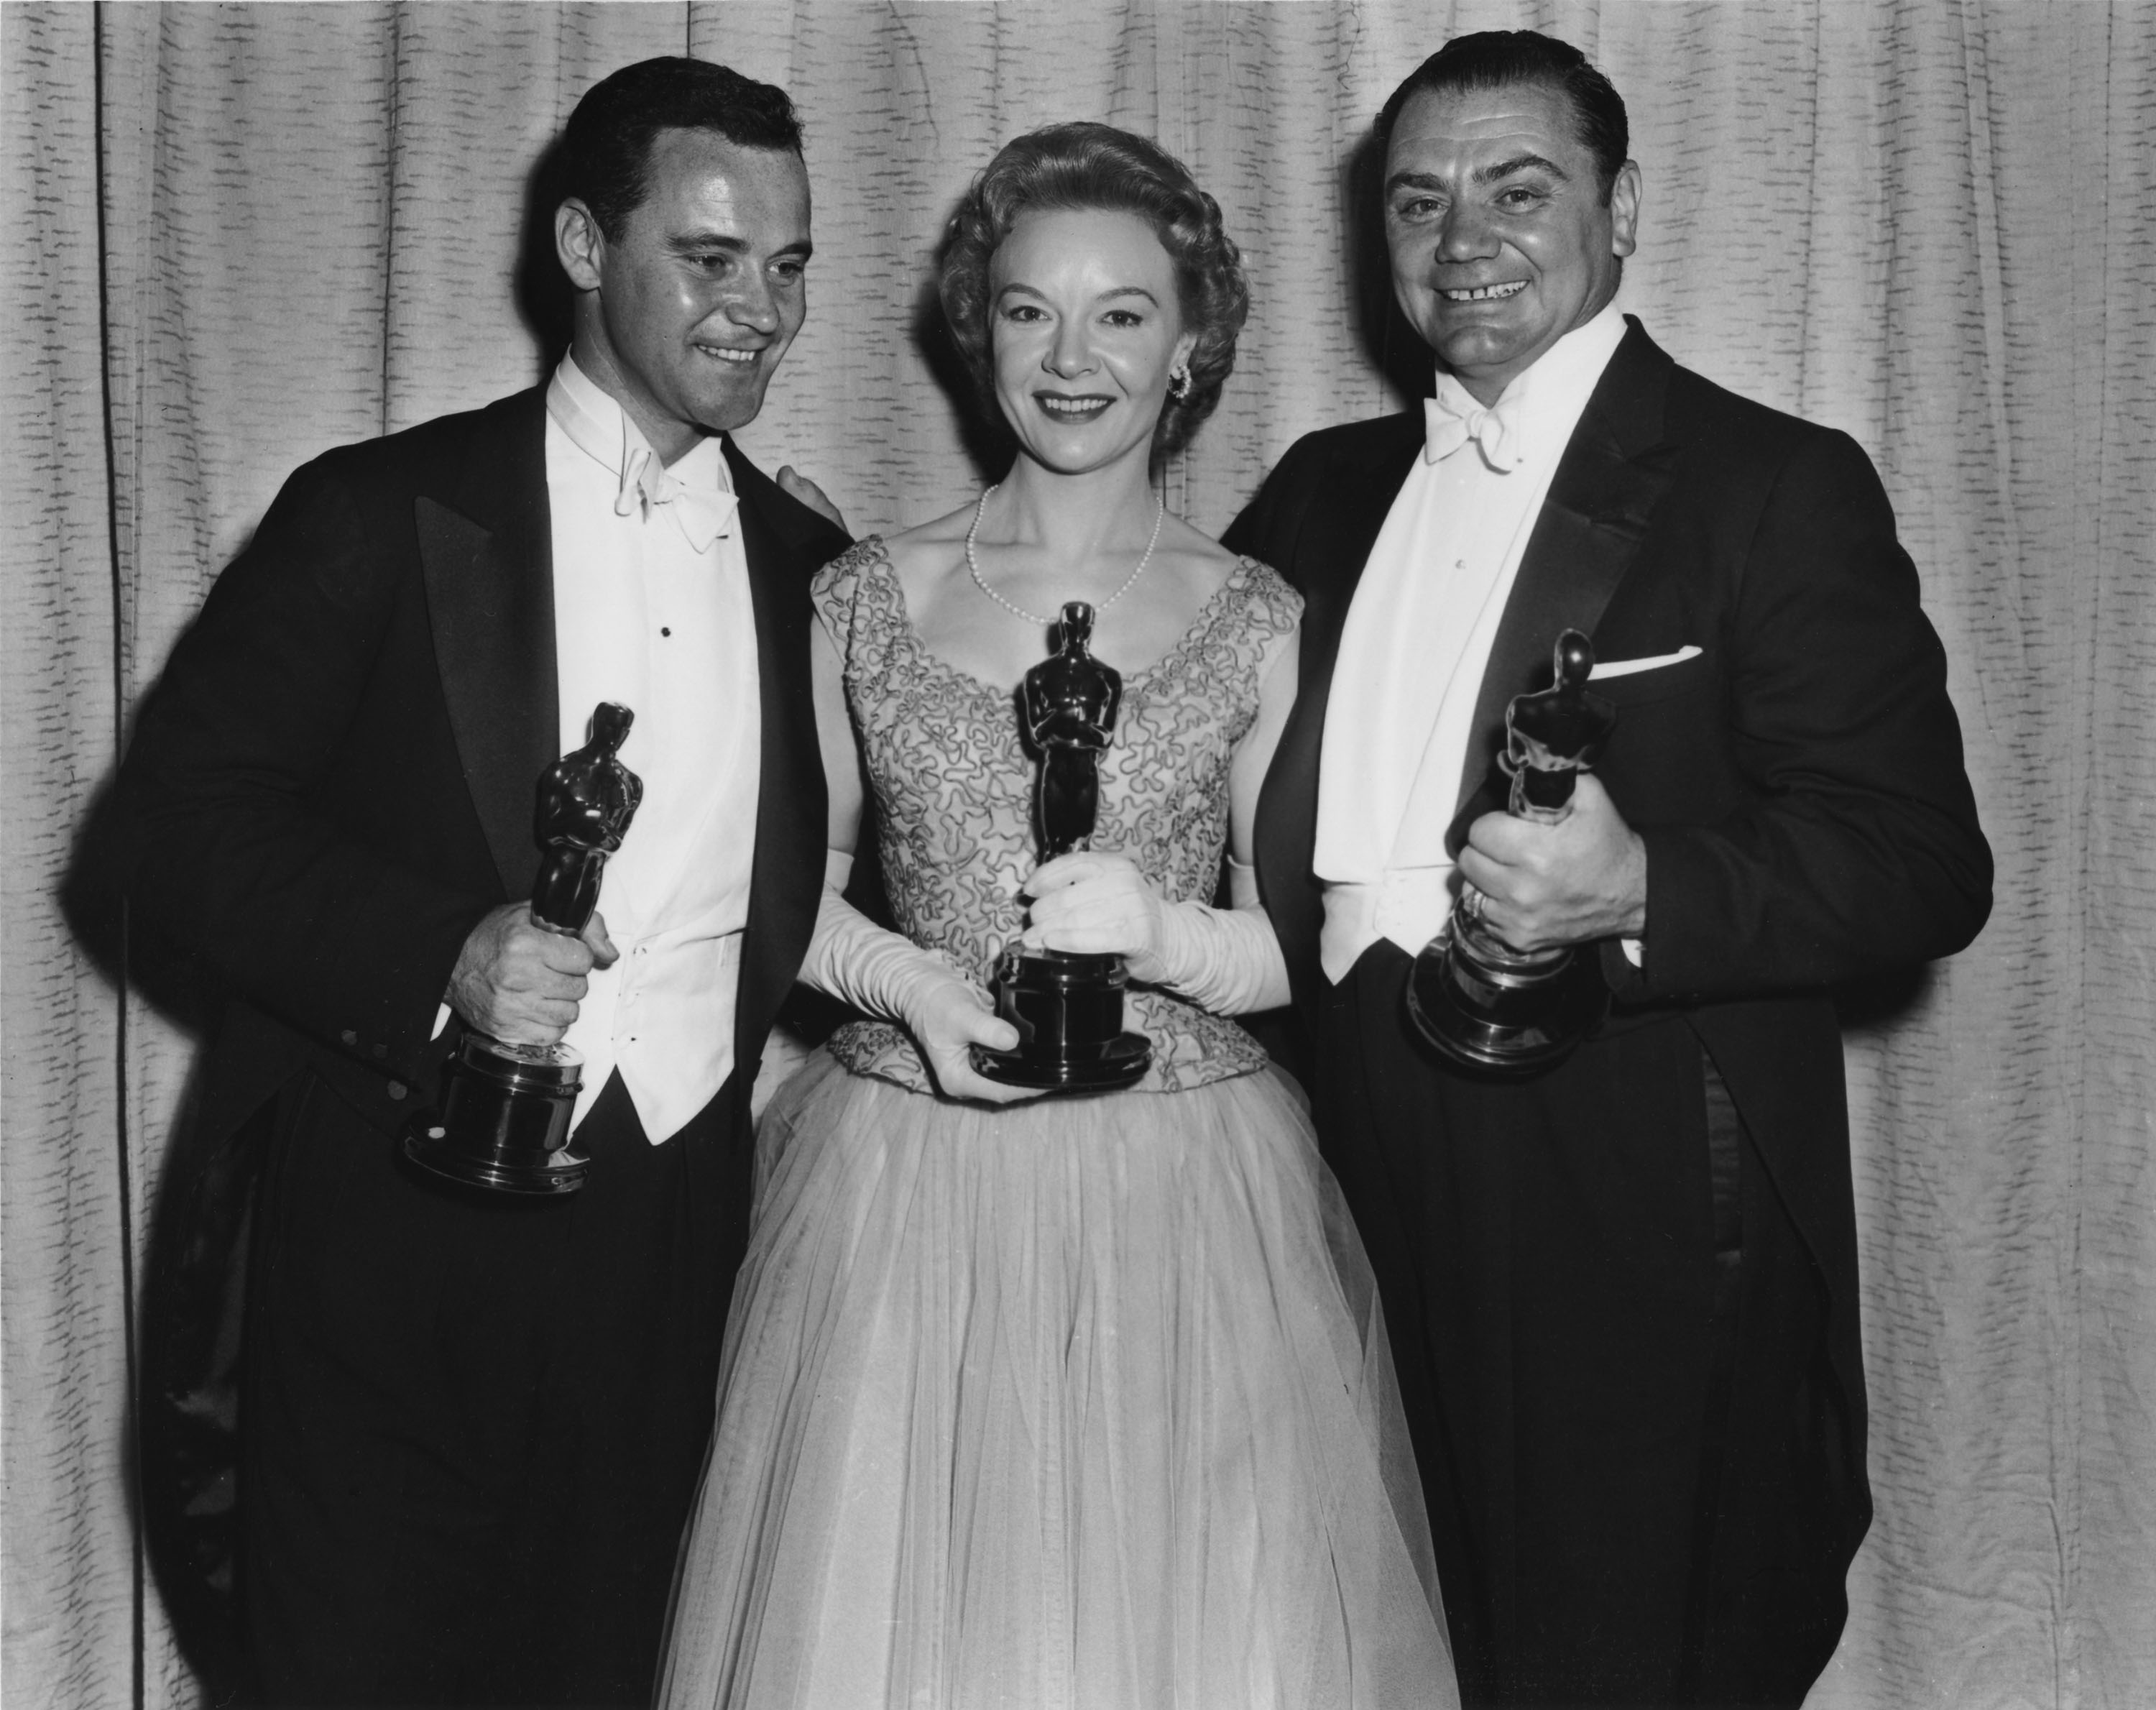 1956 | Oscars.org | Academy of Motion Picture Arts and Sciences